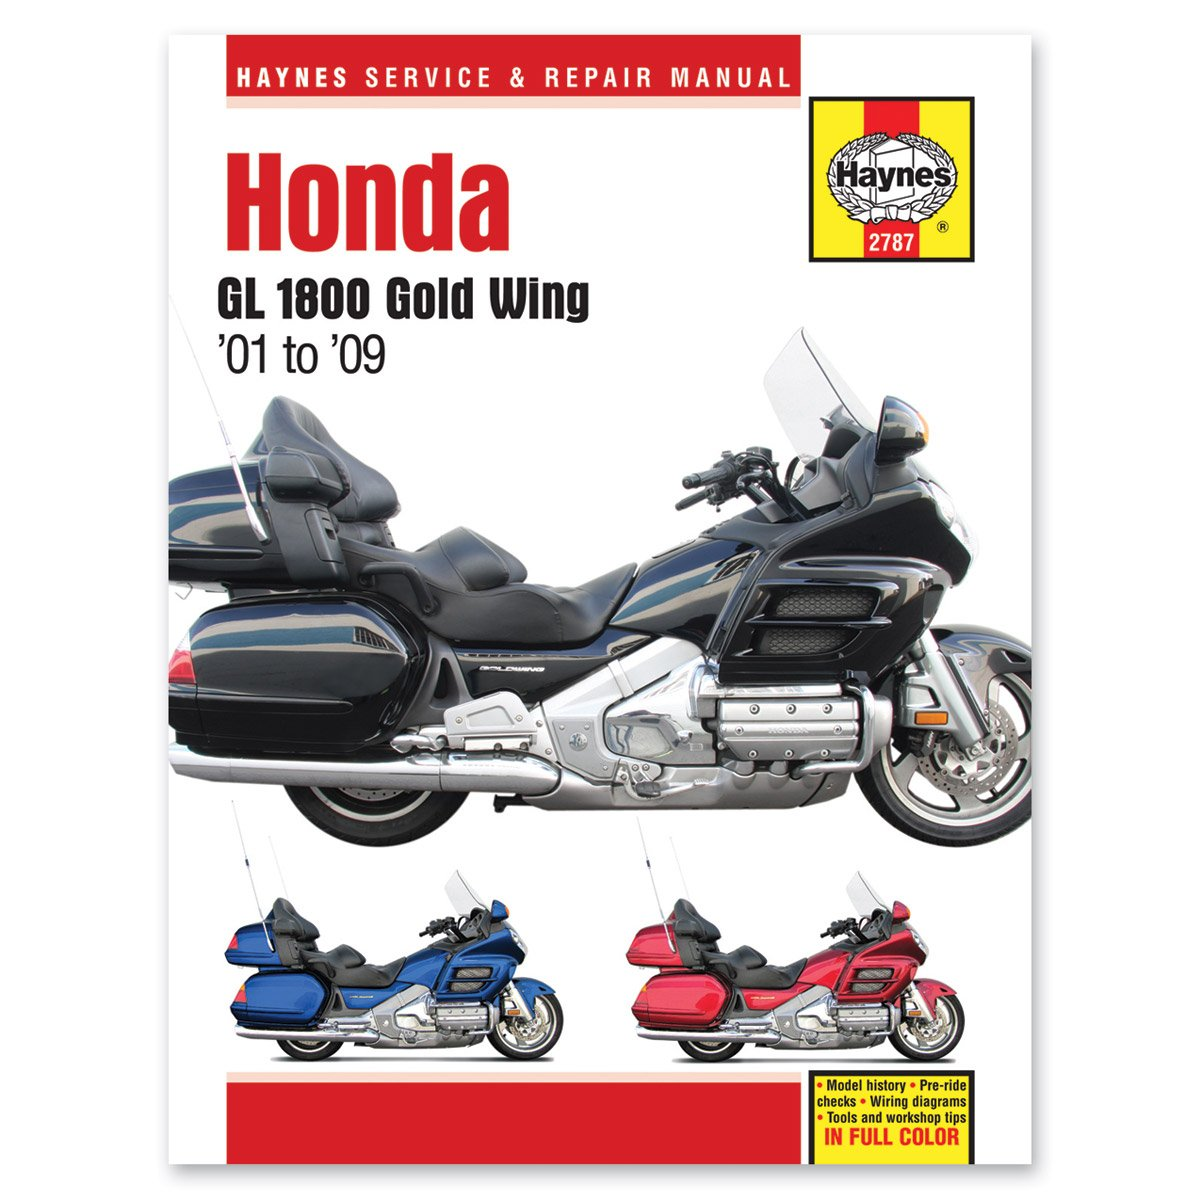 Amazon.com: Haynes Honda GL 1800 Gold Wing Repair Manual (2001-2009 on goldwing 1800 brake pads, ford taurus coolant diagram, goldwing 1800 oil filter, goldwing 1800 cooling, goldwing 1800 final drive, goldwing 1800 steering diagram, goldwing 1800 honda, goldwing 1800 parts diagram, goldwing wiring under seat, goldwing 1800 drive shaft, goldwing 1800 lights, goldwing 1800 clutch, goldwing 1800 exhaust, goldwing 1800 controls, goldwing 1800 coolant system, goldwing 1800 motor, goldwing 1800 transmission, 2002 ford taurus shift diagram, goldwing 1800 seats, goldwing 1800 manual,